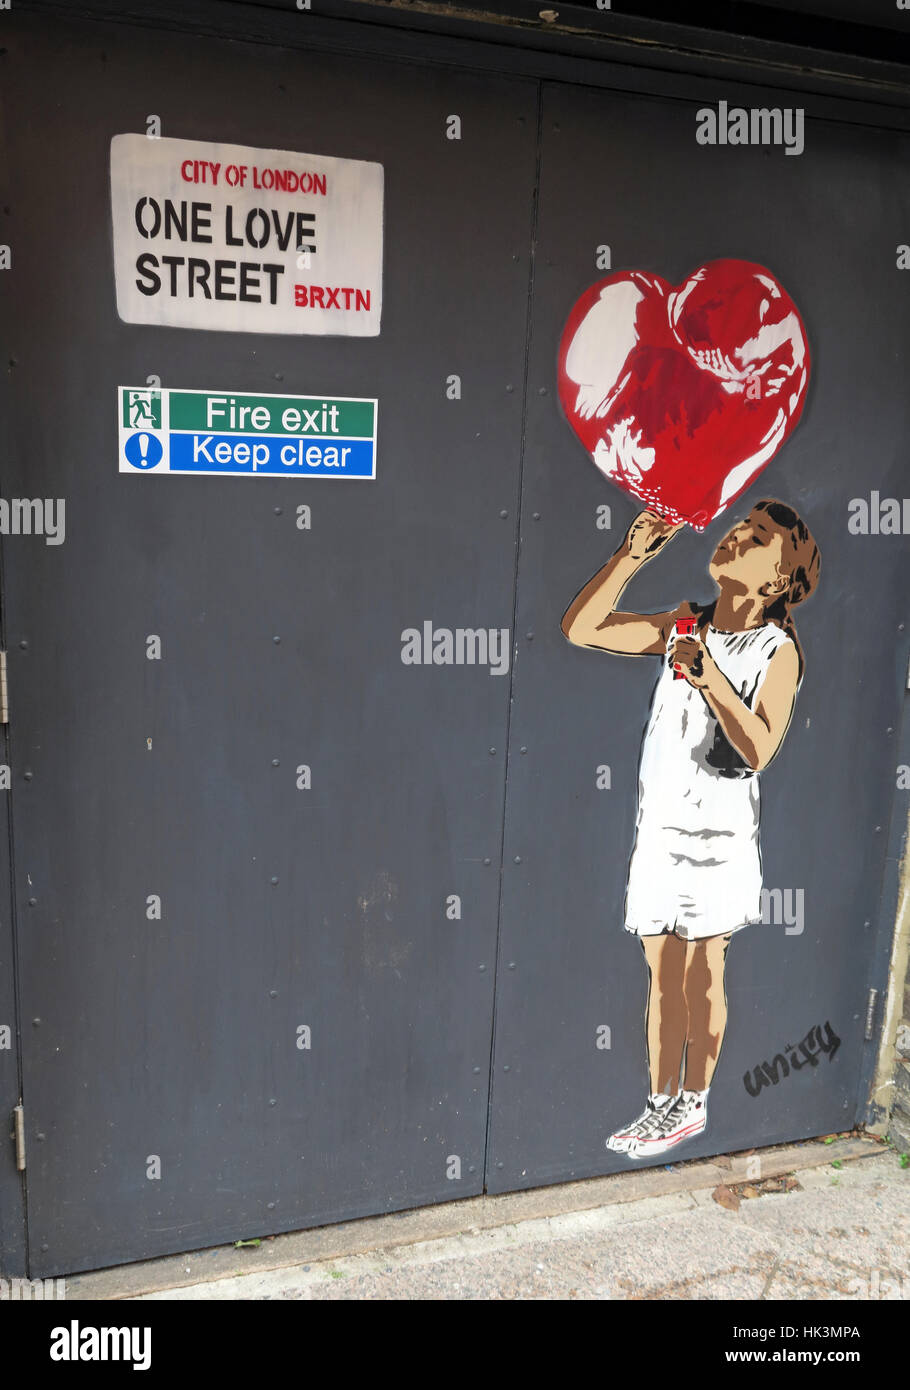 Street art in Brixton London, England, UK - One Love street girl with balloon - Stock Image